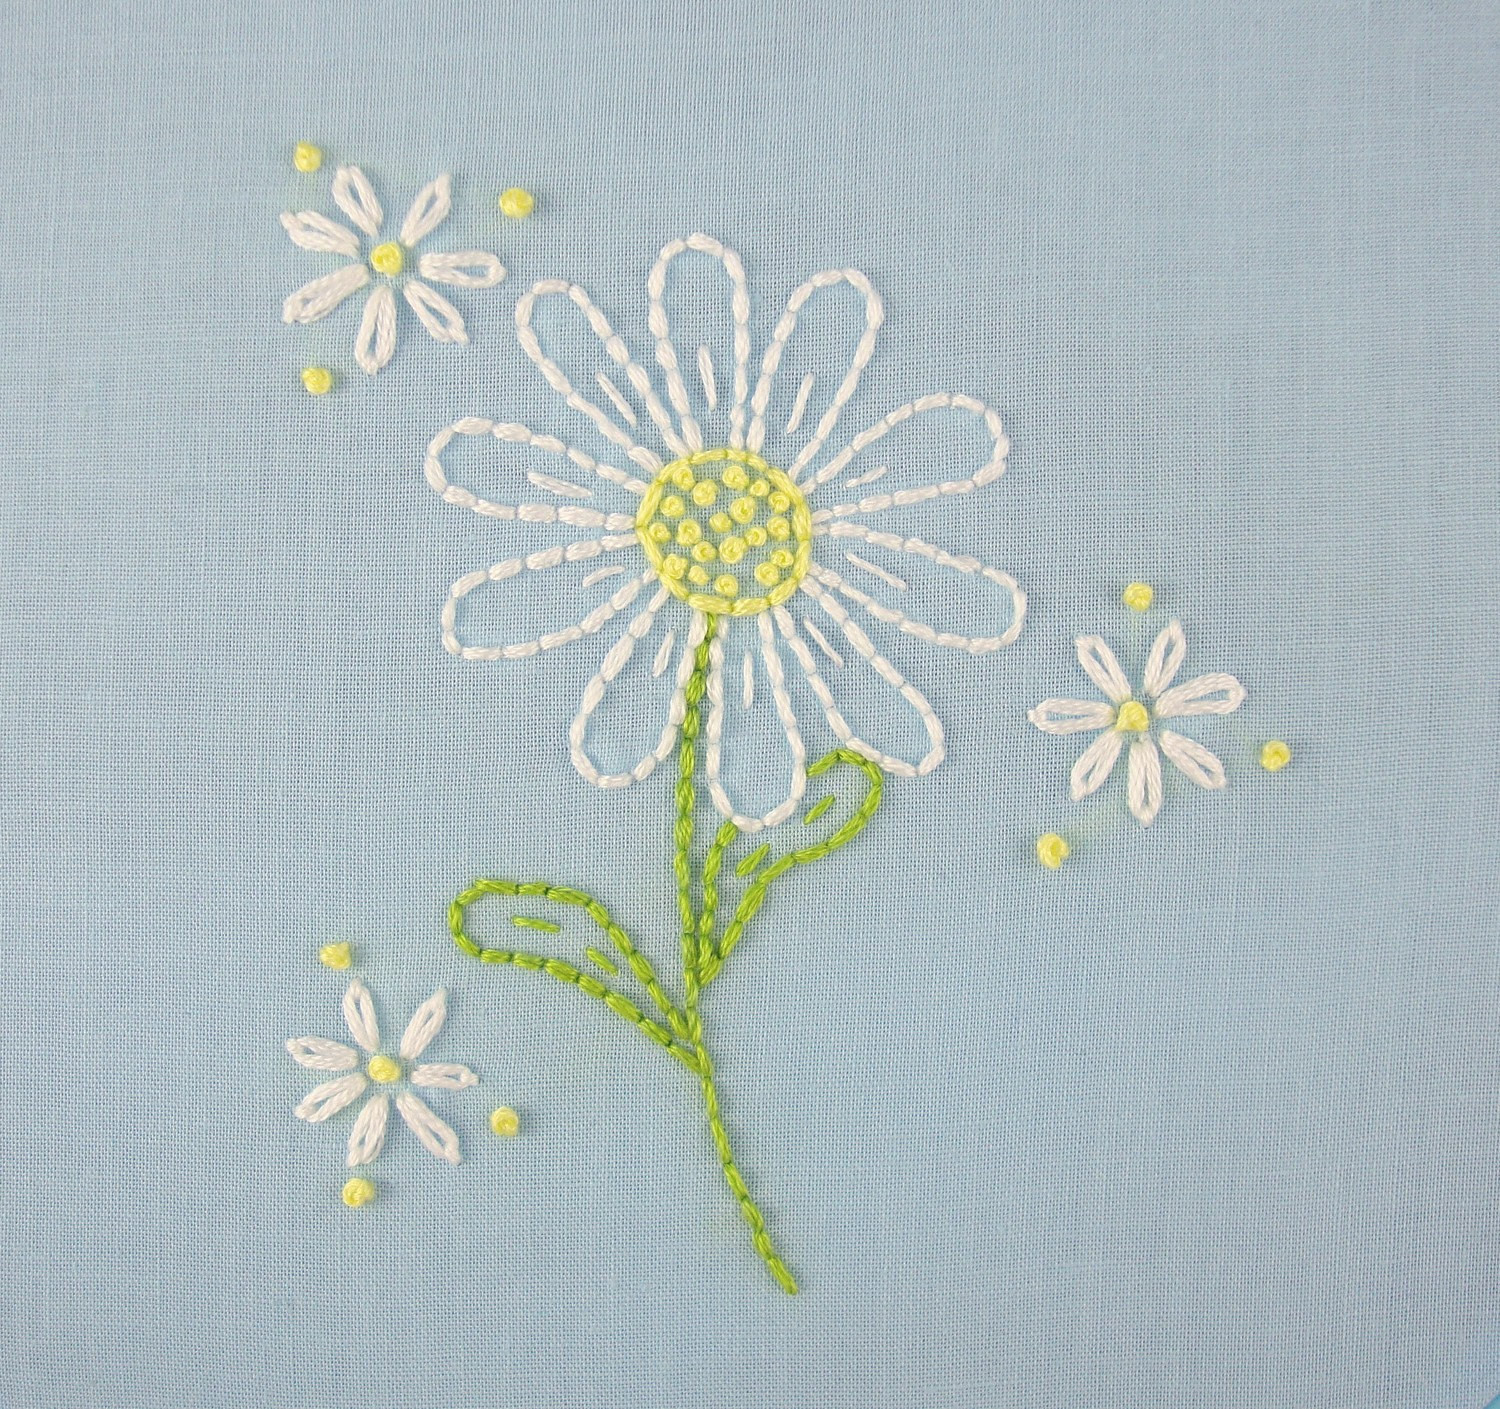 Hand Embroidery Patterns Luxury Daisy Hand Embroidery Pattern Daisy Embroidery Daisy Design Of Adorable 44 Pictures Hand Embroidery Patterns